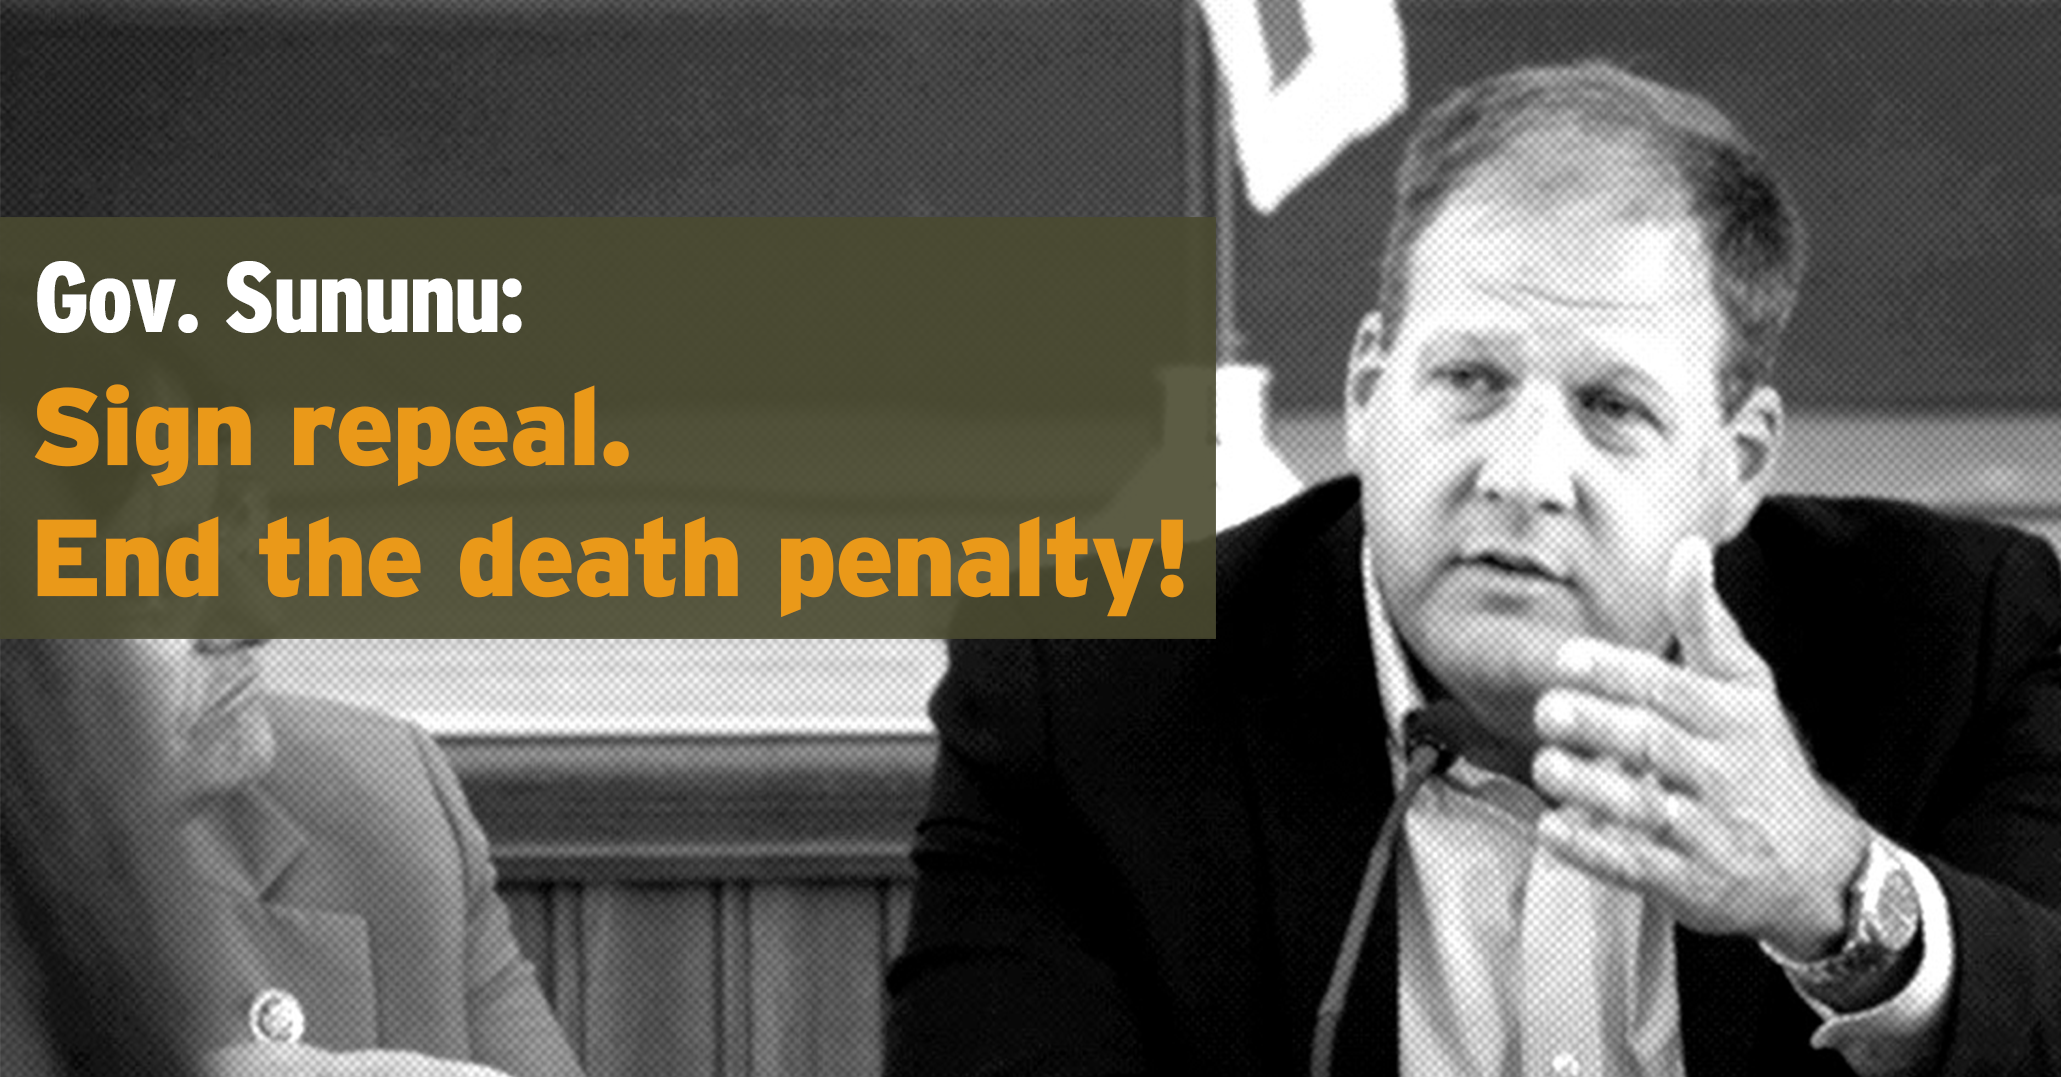 Governor Sununu: Sign repeal. End the death penalty!